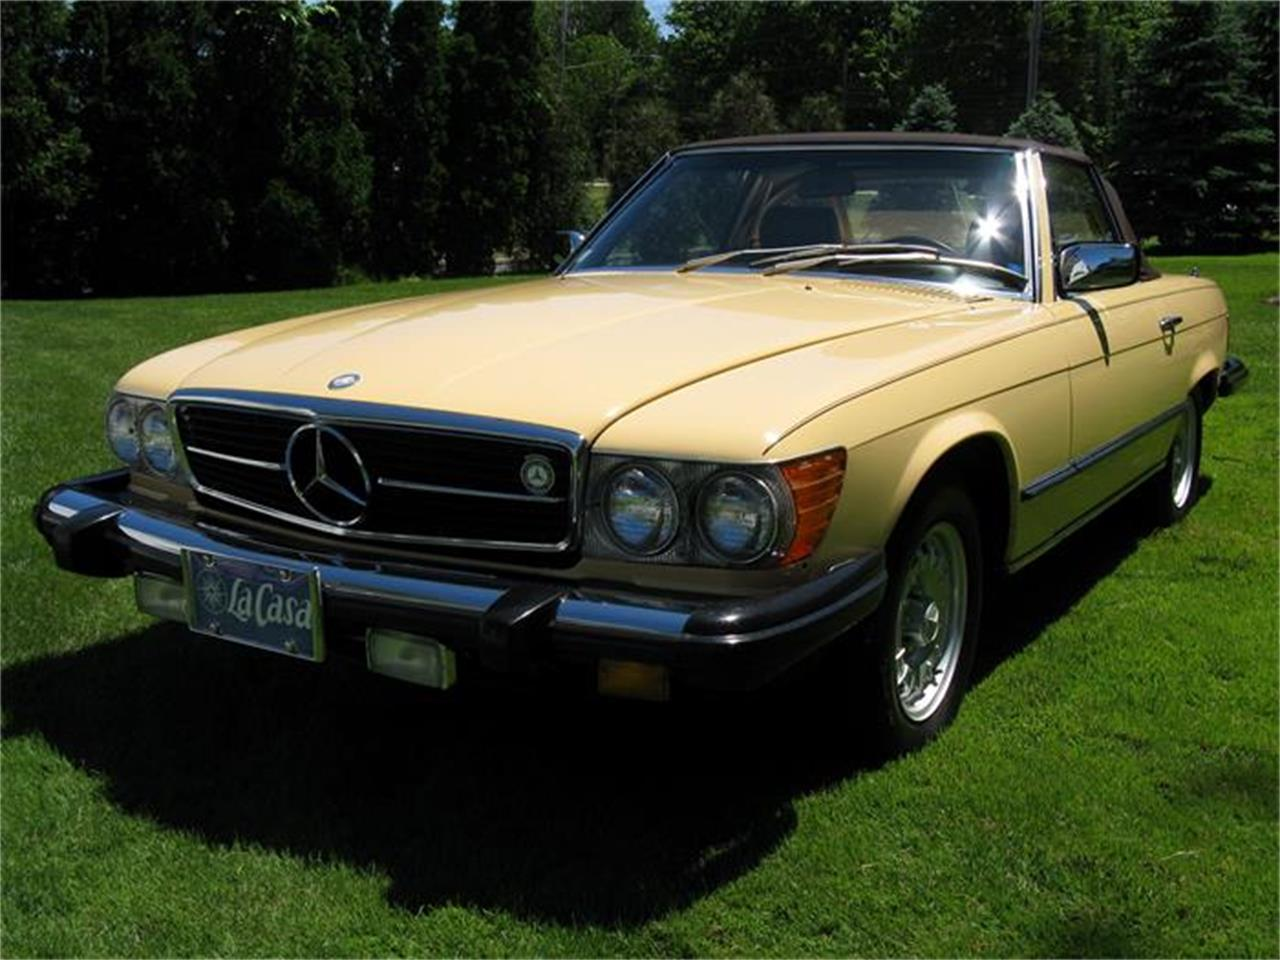 Large Picture of '82 Mercedes-Benz 380SL located in Ohio - $29,900.00 - BS6W